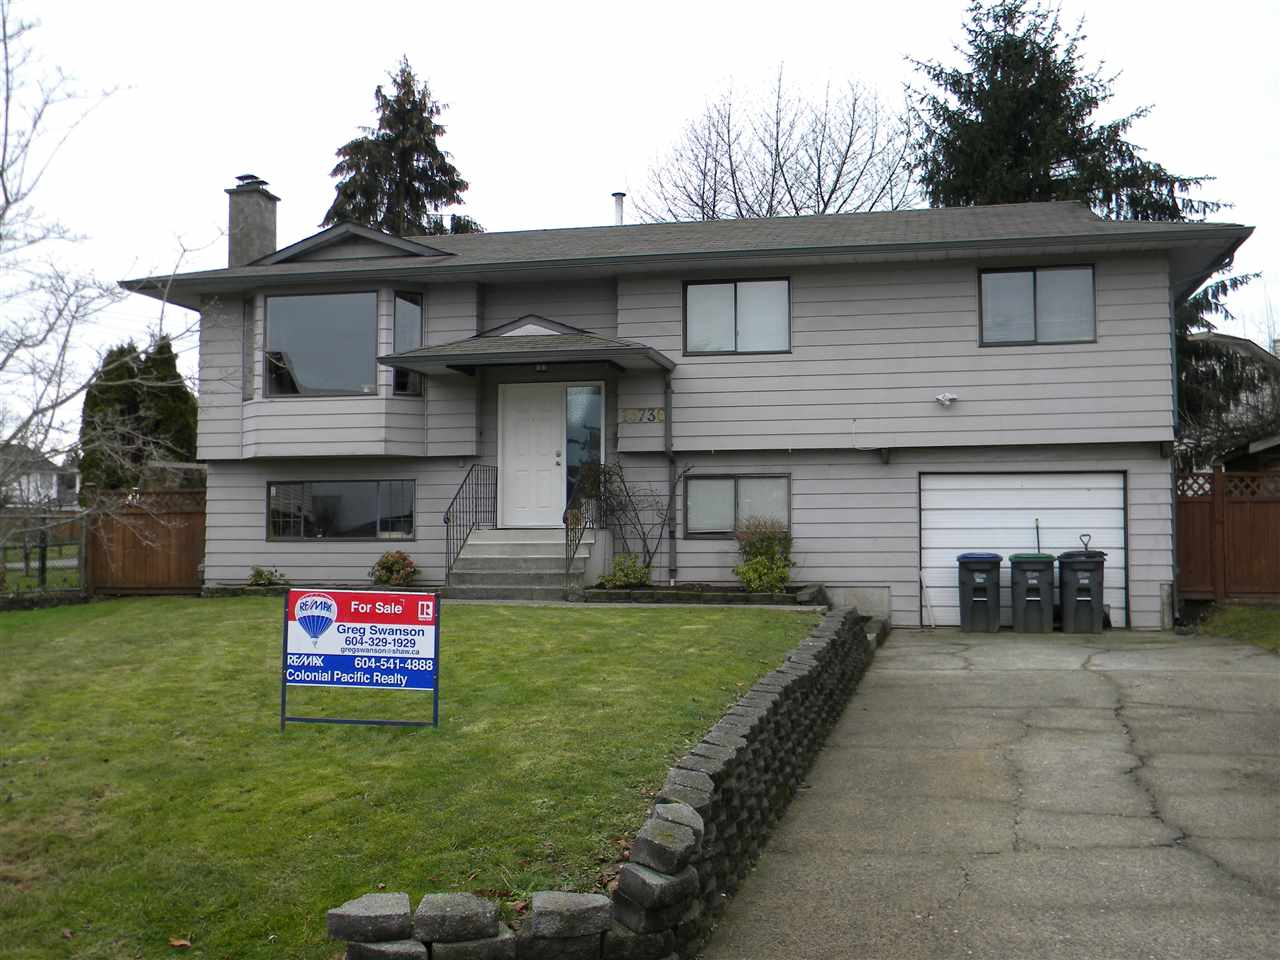 Main Photo: 15736 95A Avenue in Surrey: Fleetwood Tynehead House for sale : MLS® # R2132651